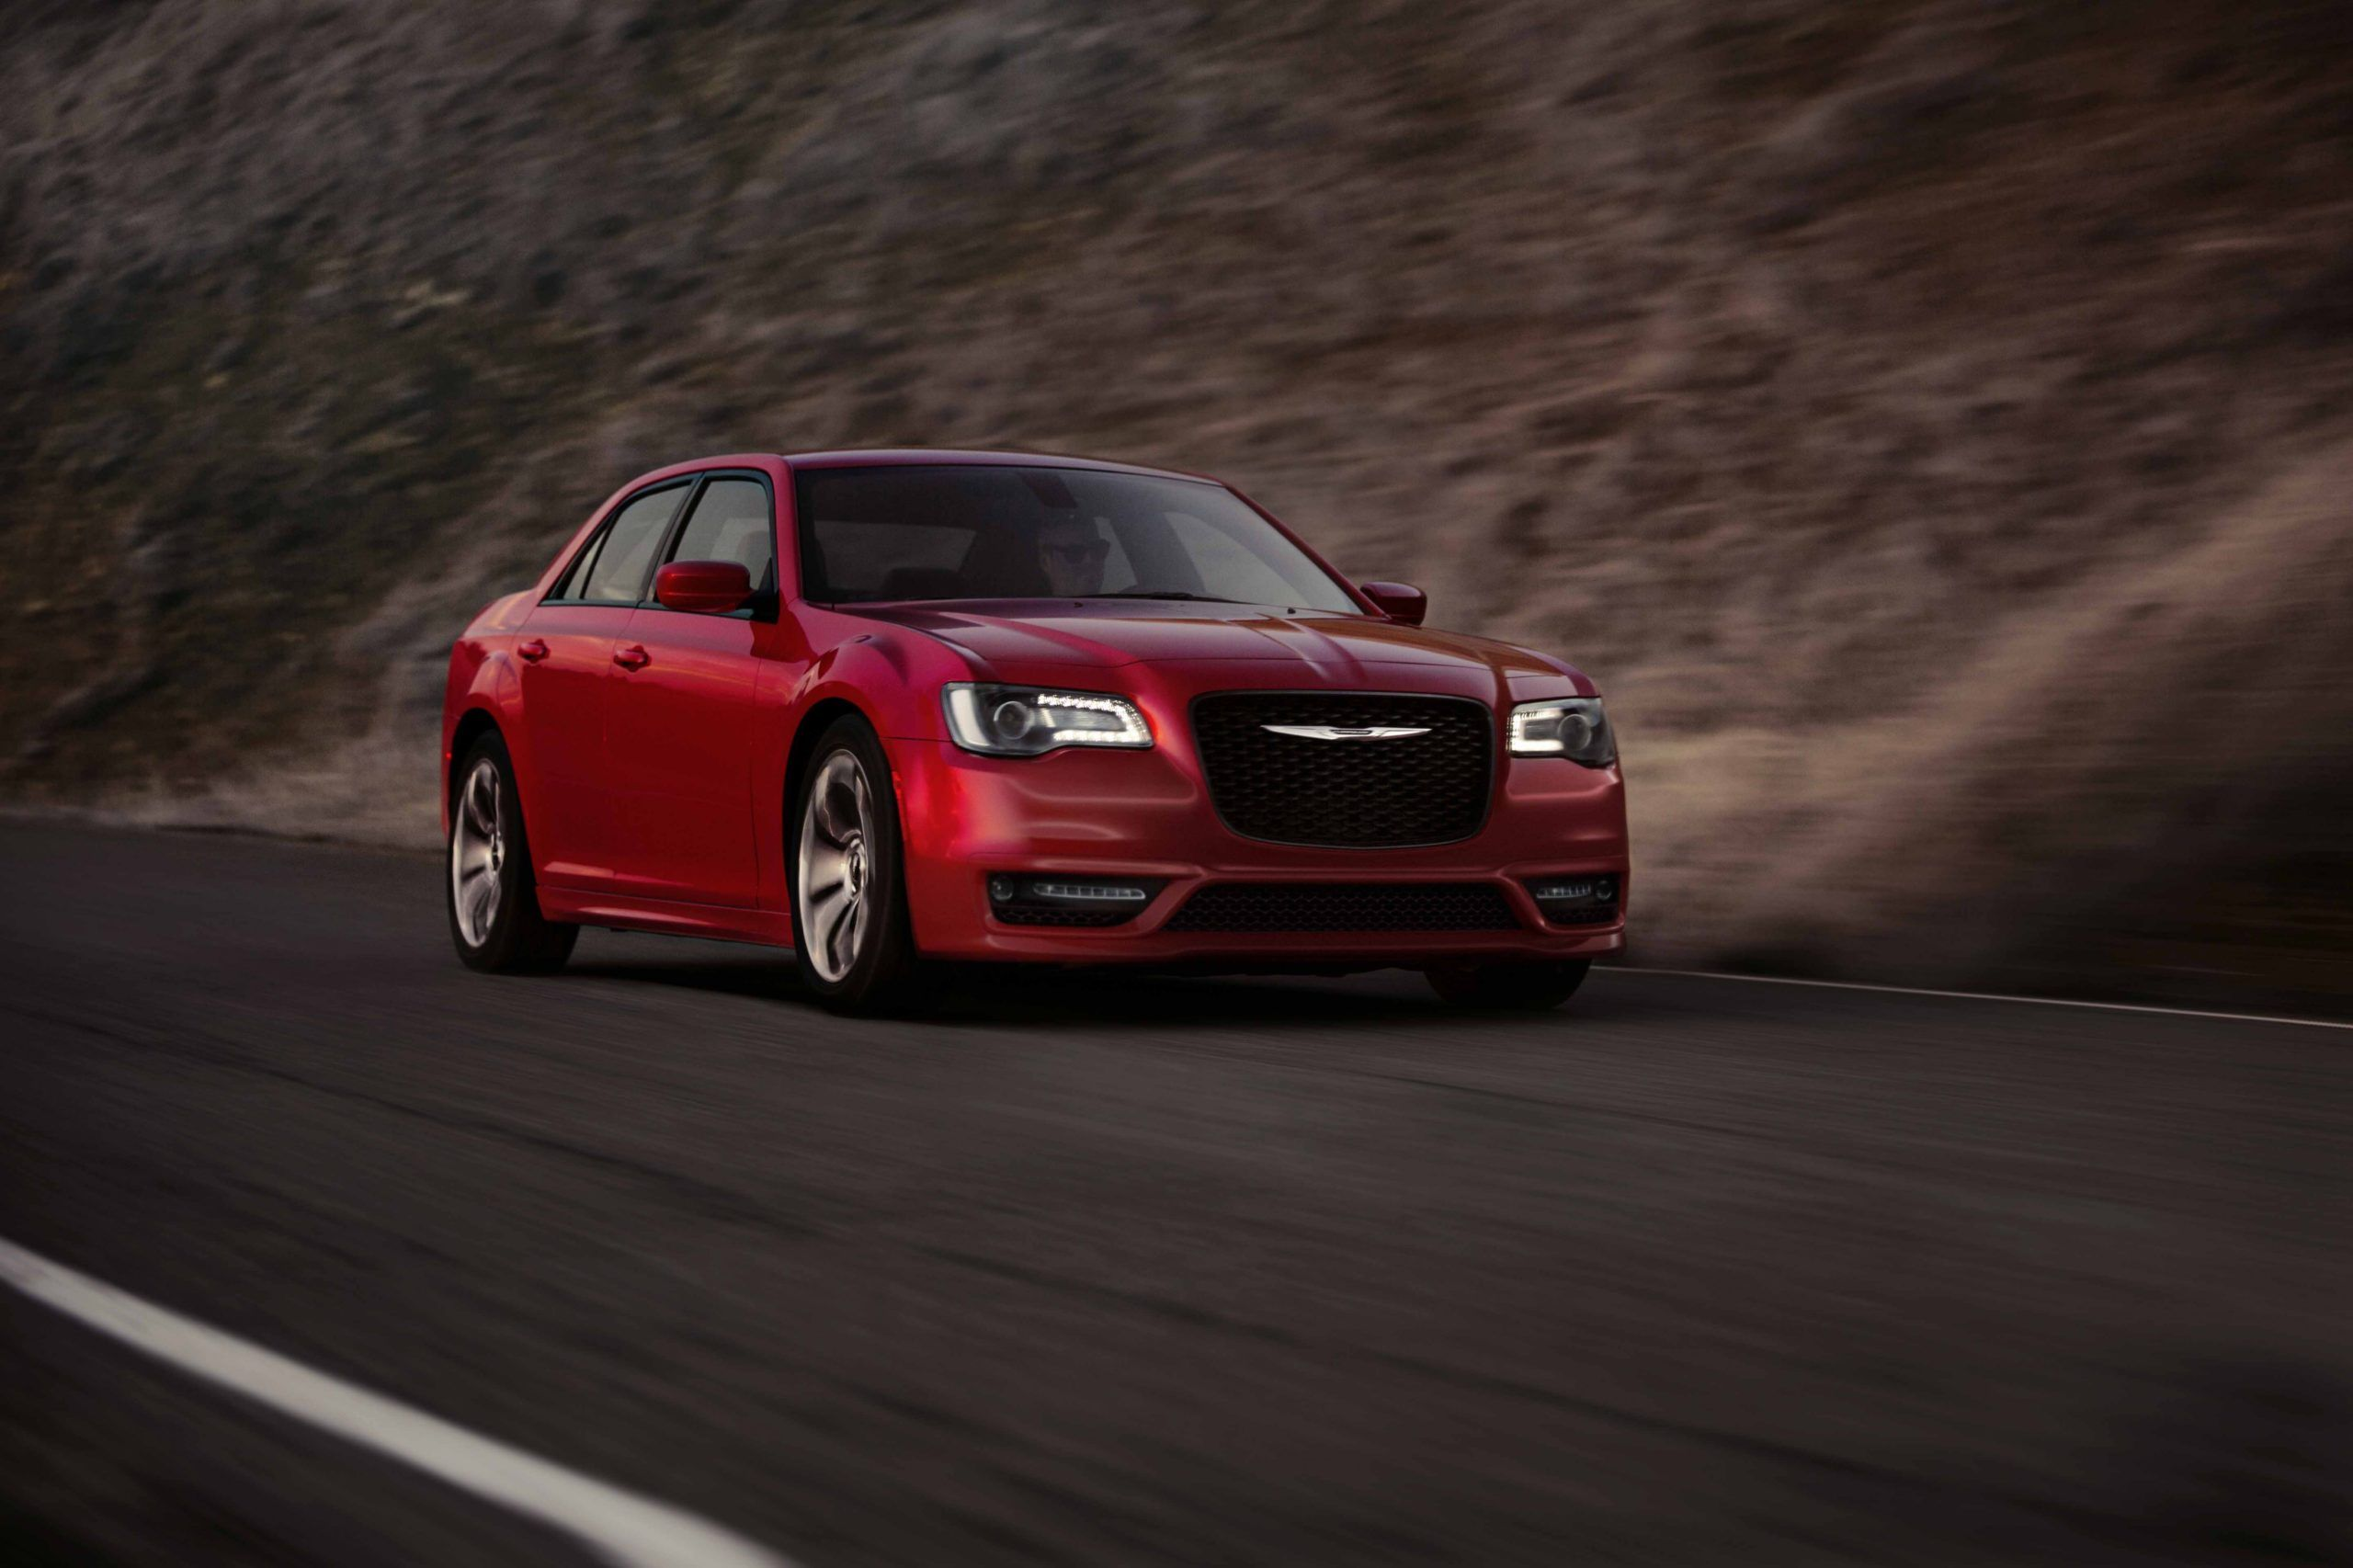 Five Things You Won't Miss Out If You Attend 2020 Chrysler 300 Srt8 Design #chrysler300